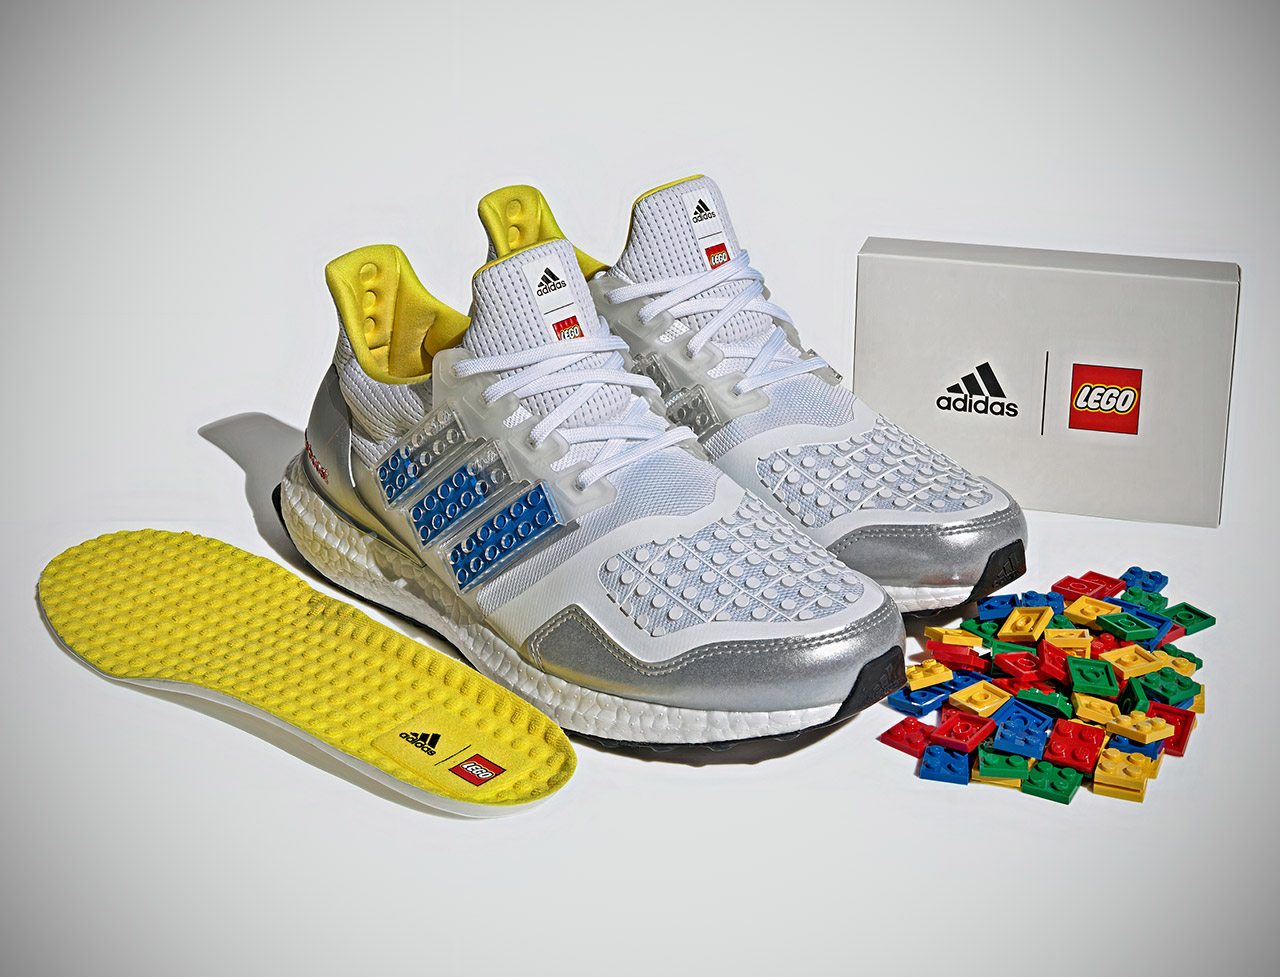 Adidas Ultraboost x DNA LEGO Plates Running Shoes